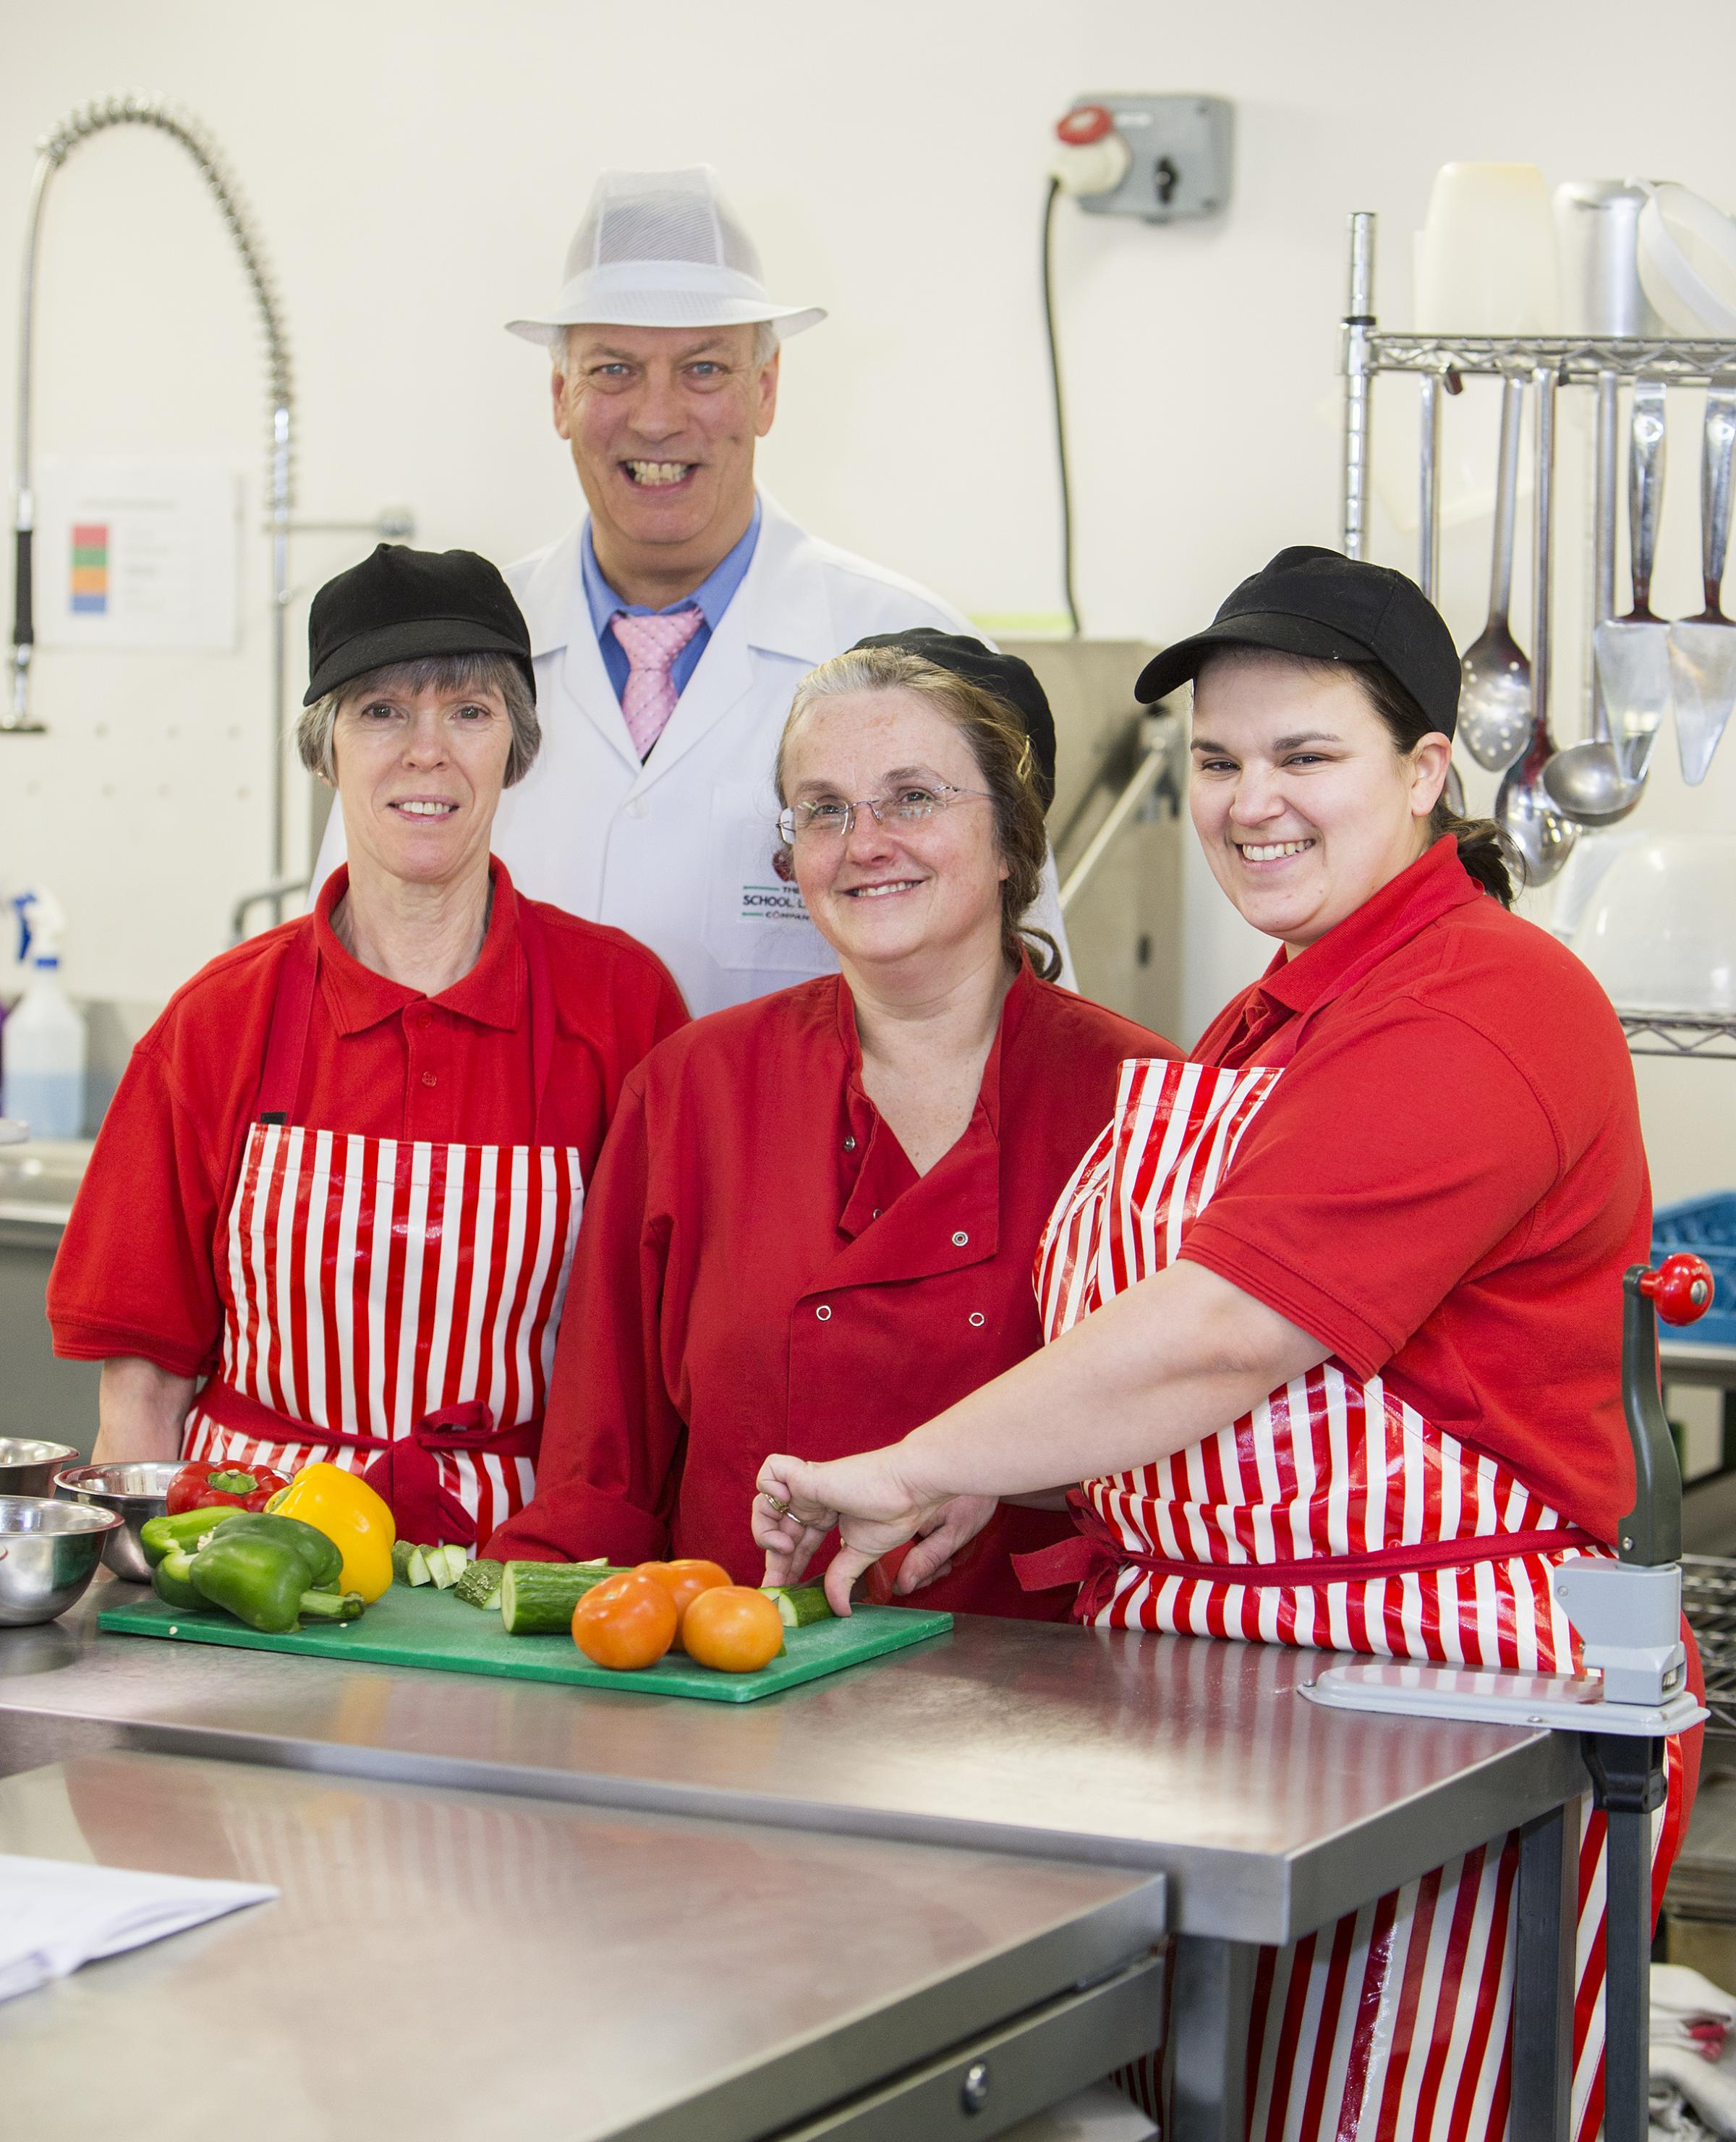 The School Lunch Company director, Les Redhead, with cooks Julie Bushnell, Julie White and Melissa Salmon